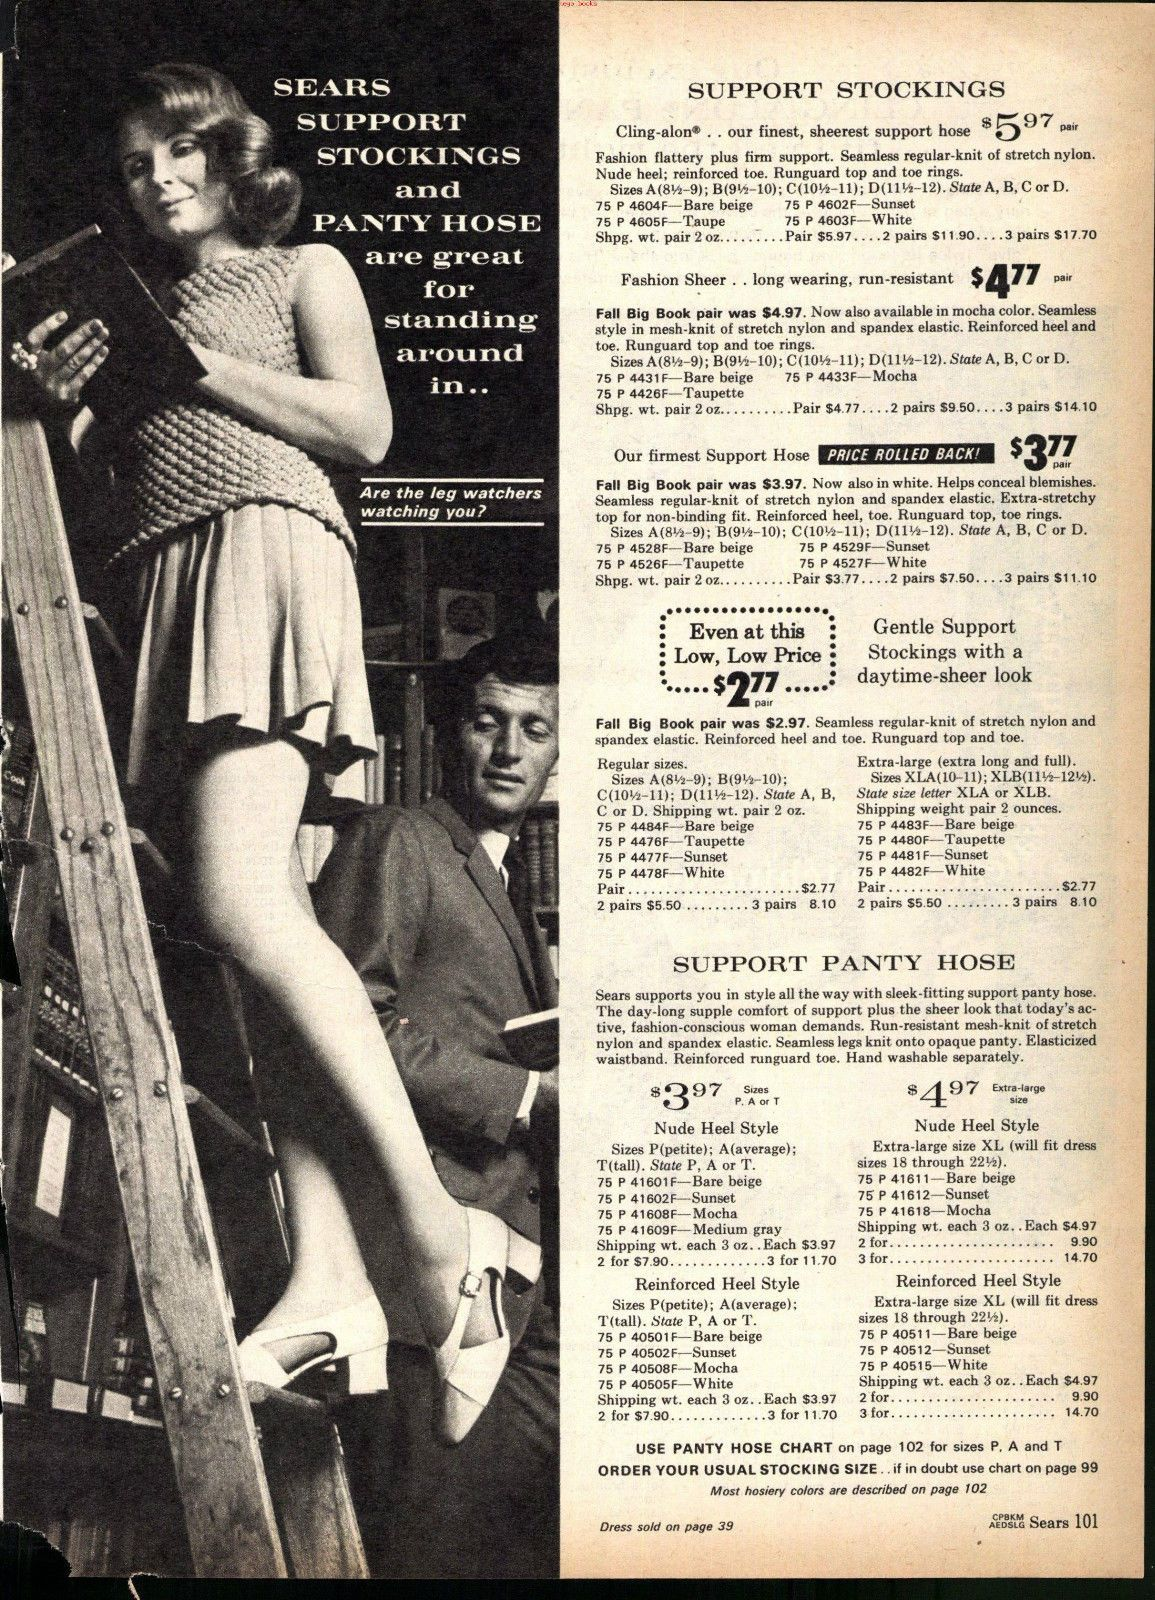 ab699f799e359 Details about SEARS 1970 SPRING SUMMER mail order catalogue ON DVD ...